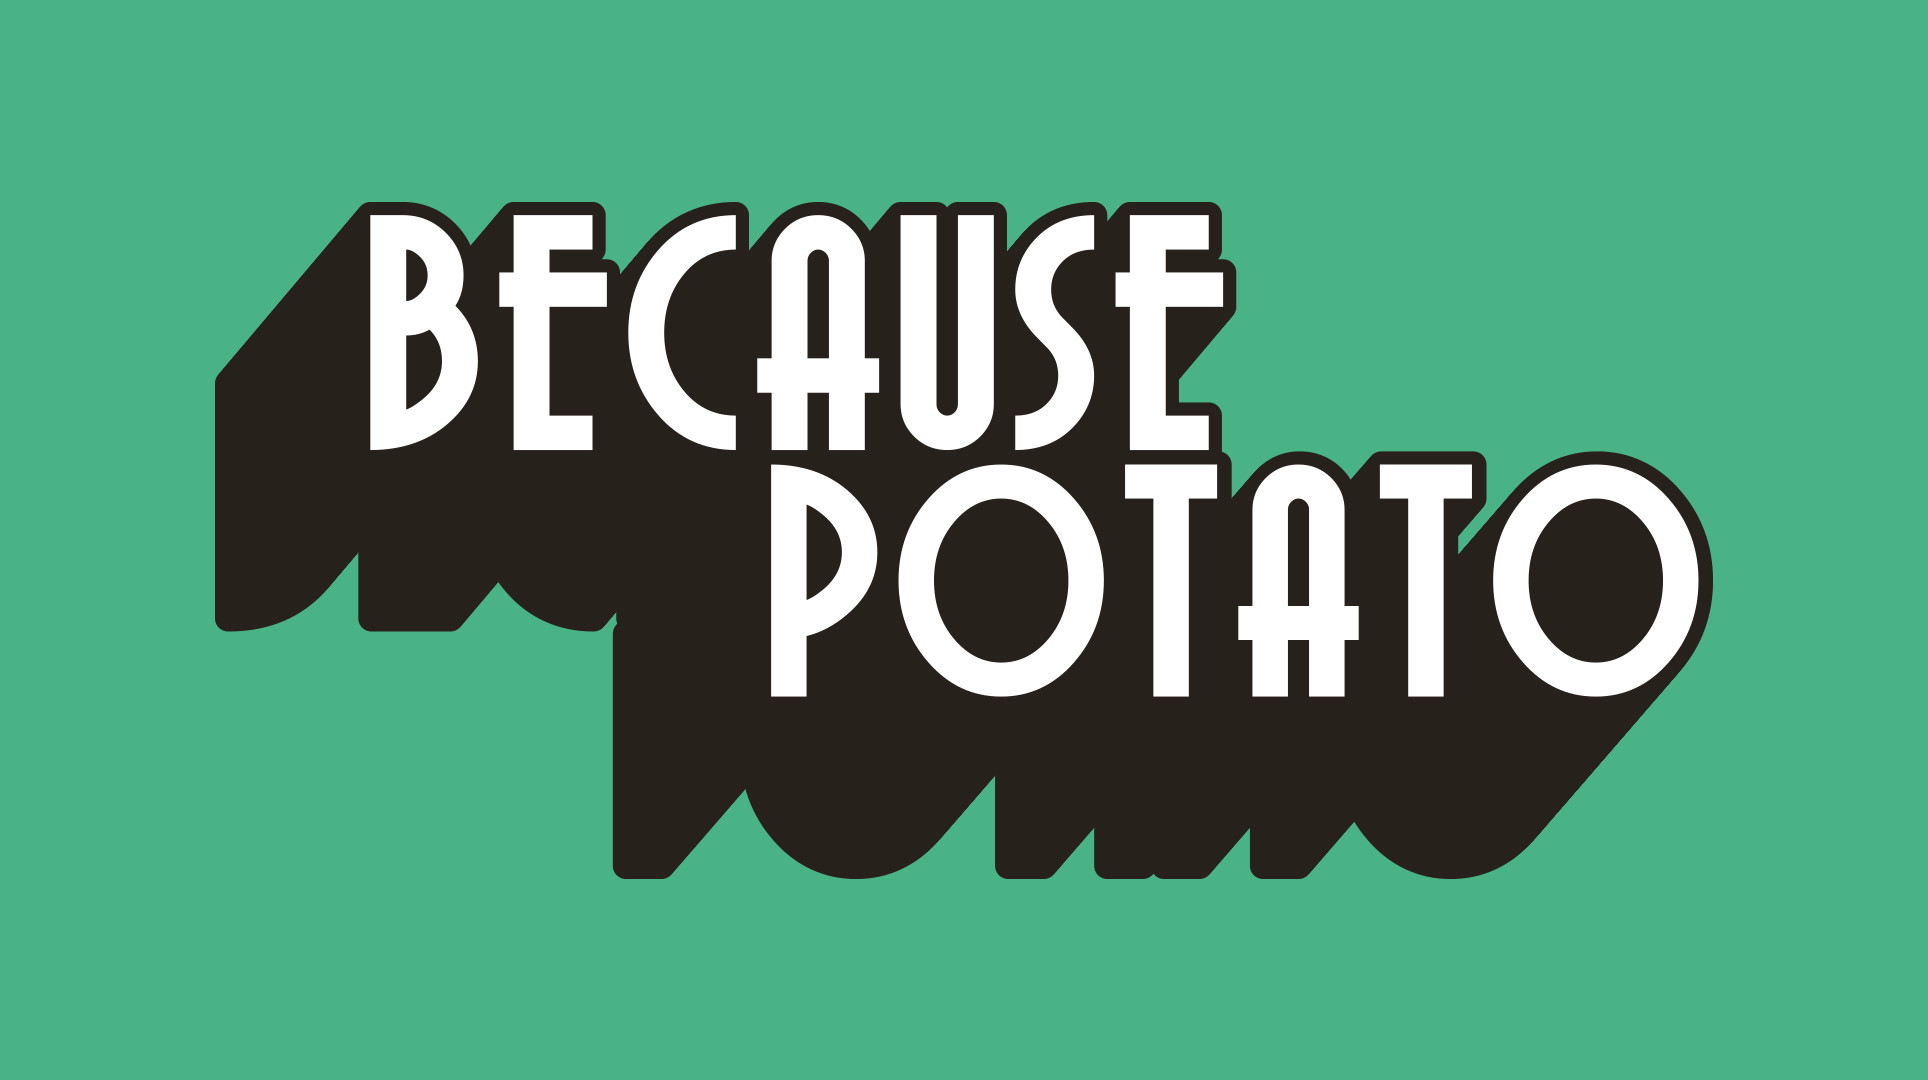 … potato wallpapers; lessons learned from reading influence part 1 rynout  com …